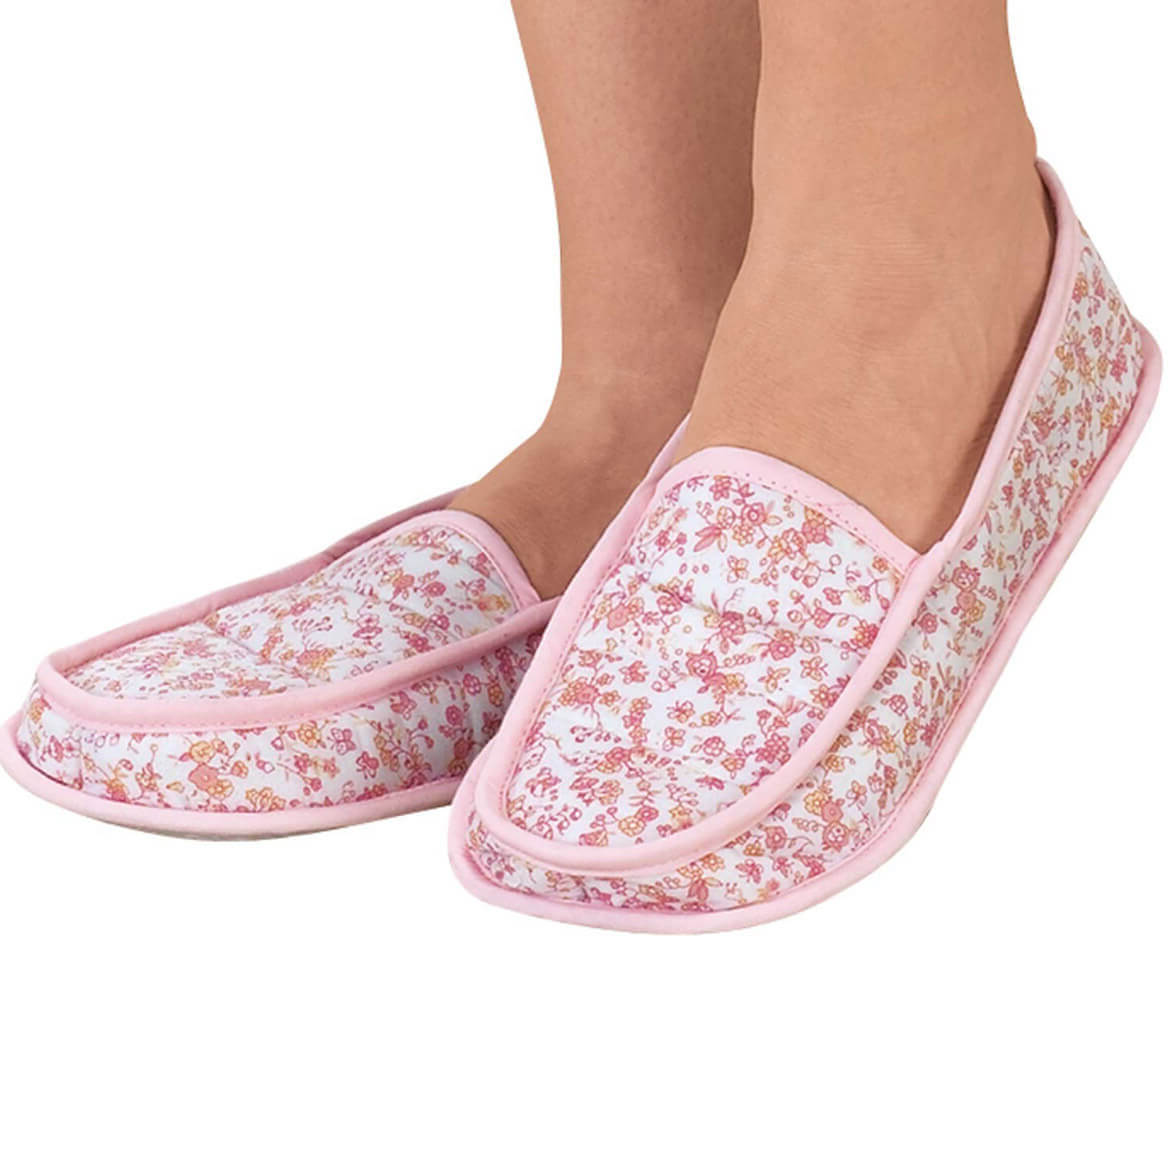 37aab1dcebdb9 Soft Slippers - Pink Slippers - Slippers For Women - Walter Drake